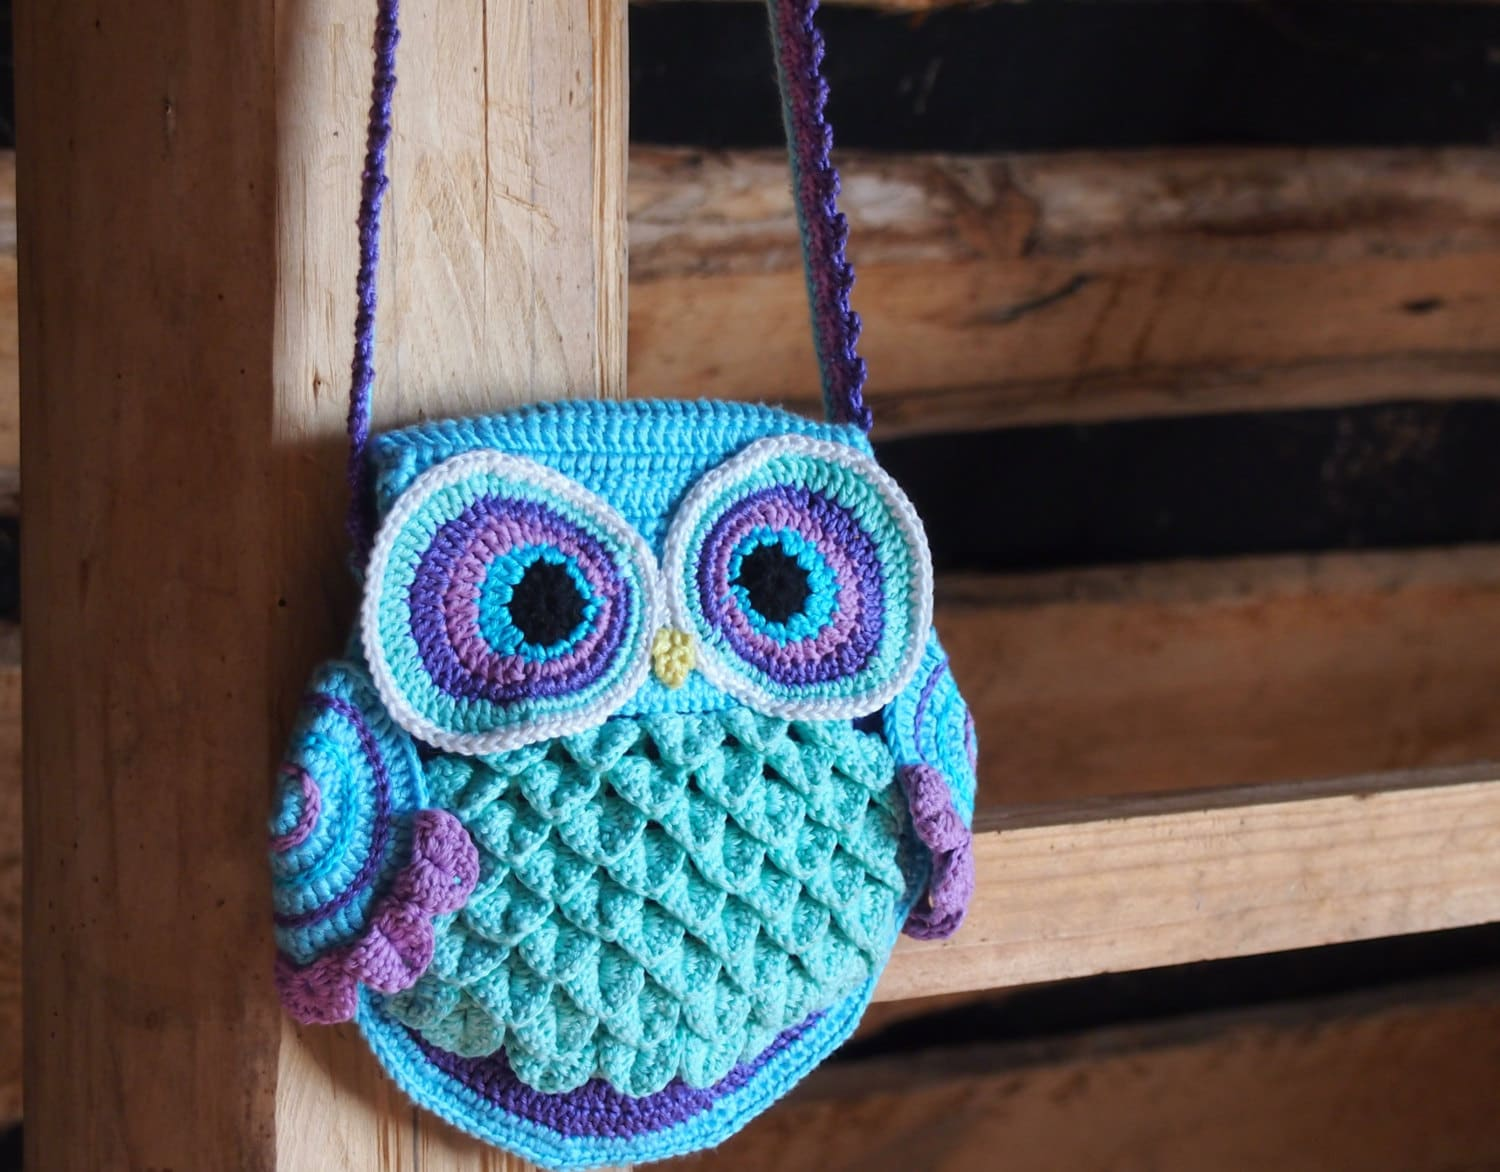 Crochet Purses And Bags Tutorials : Crochet bag pattern crochet owl pattern by ColorfulEasyCrochet